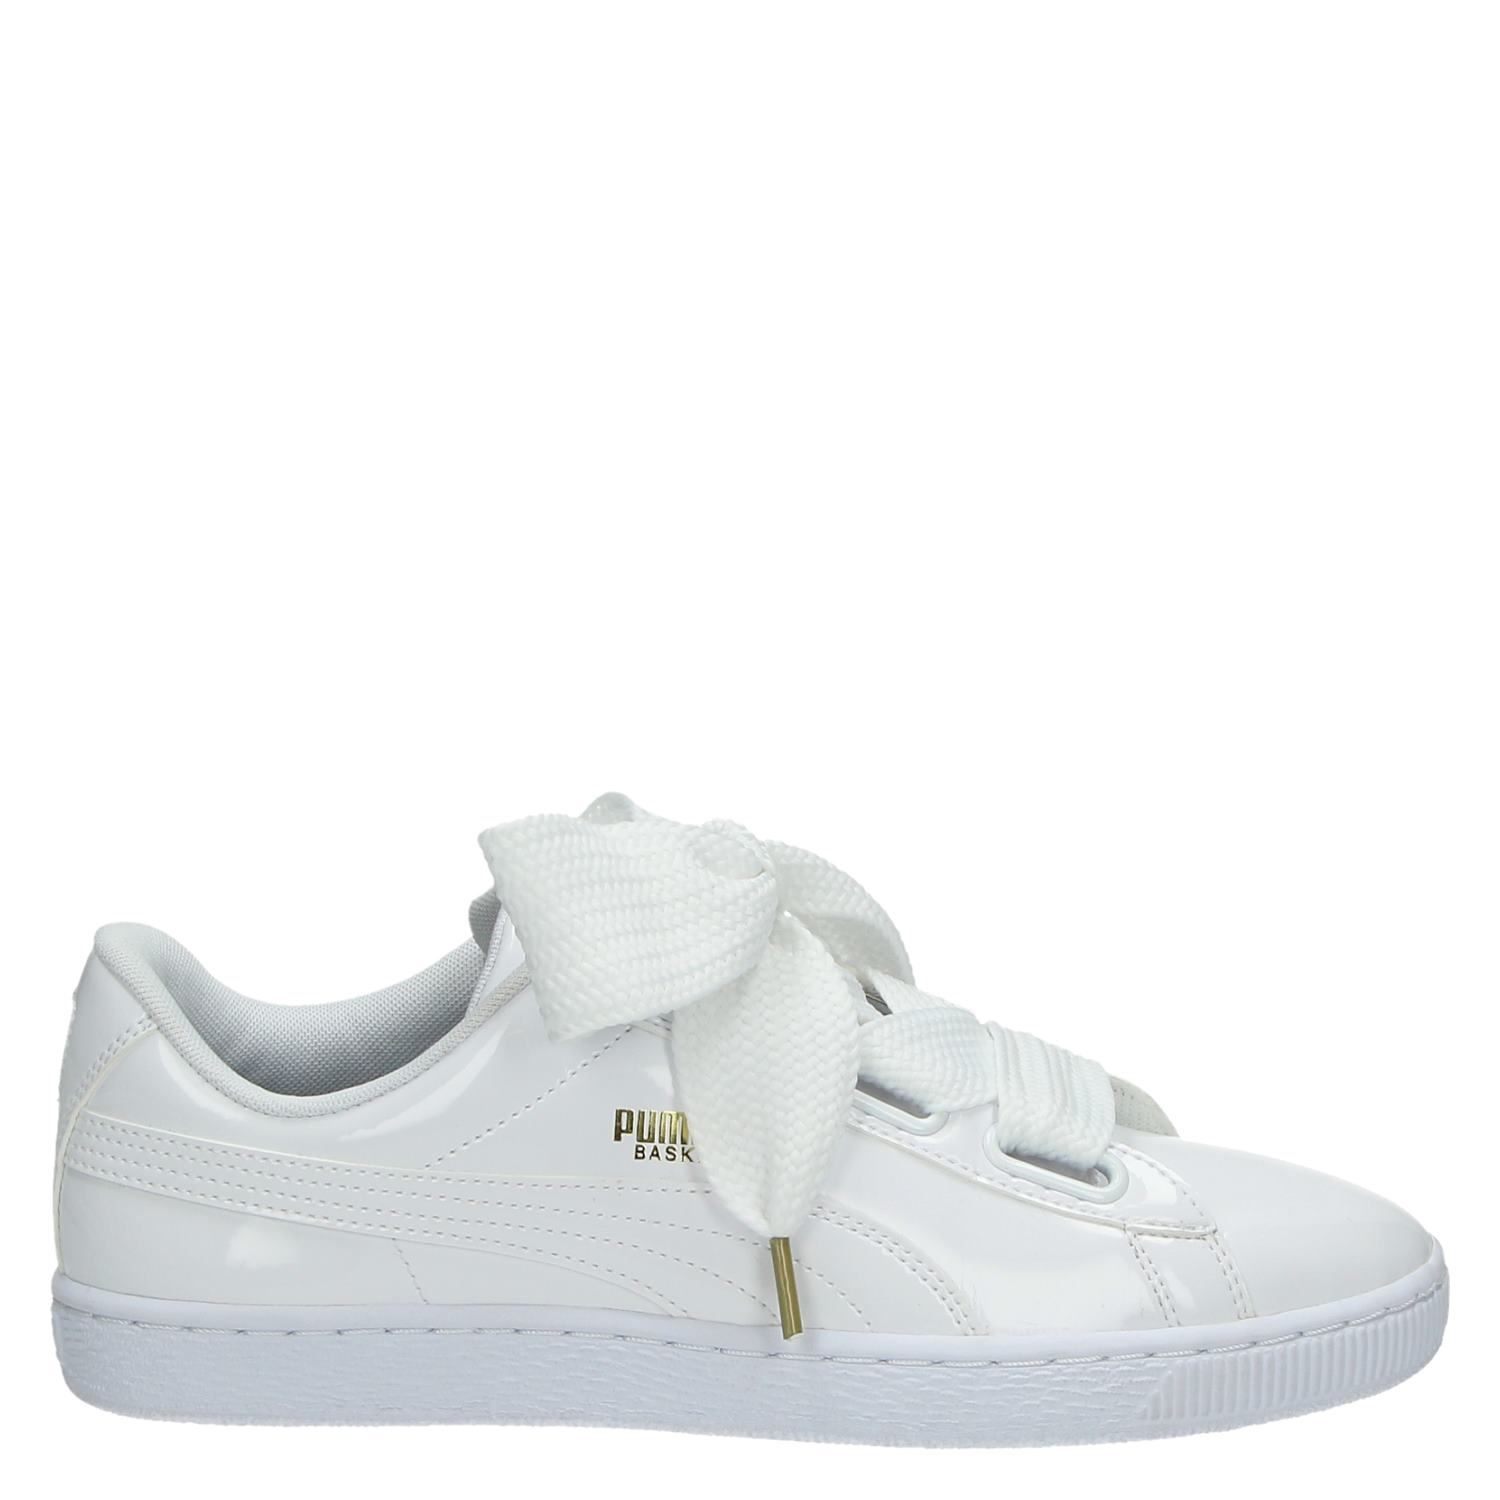 579bf30e923 Puma Basket Heart dames lage sneakers wit